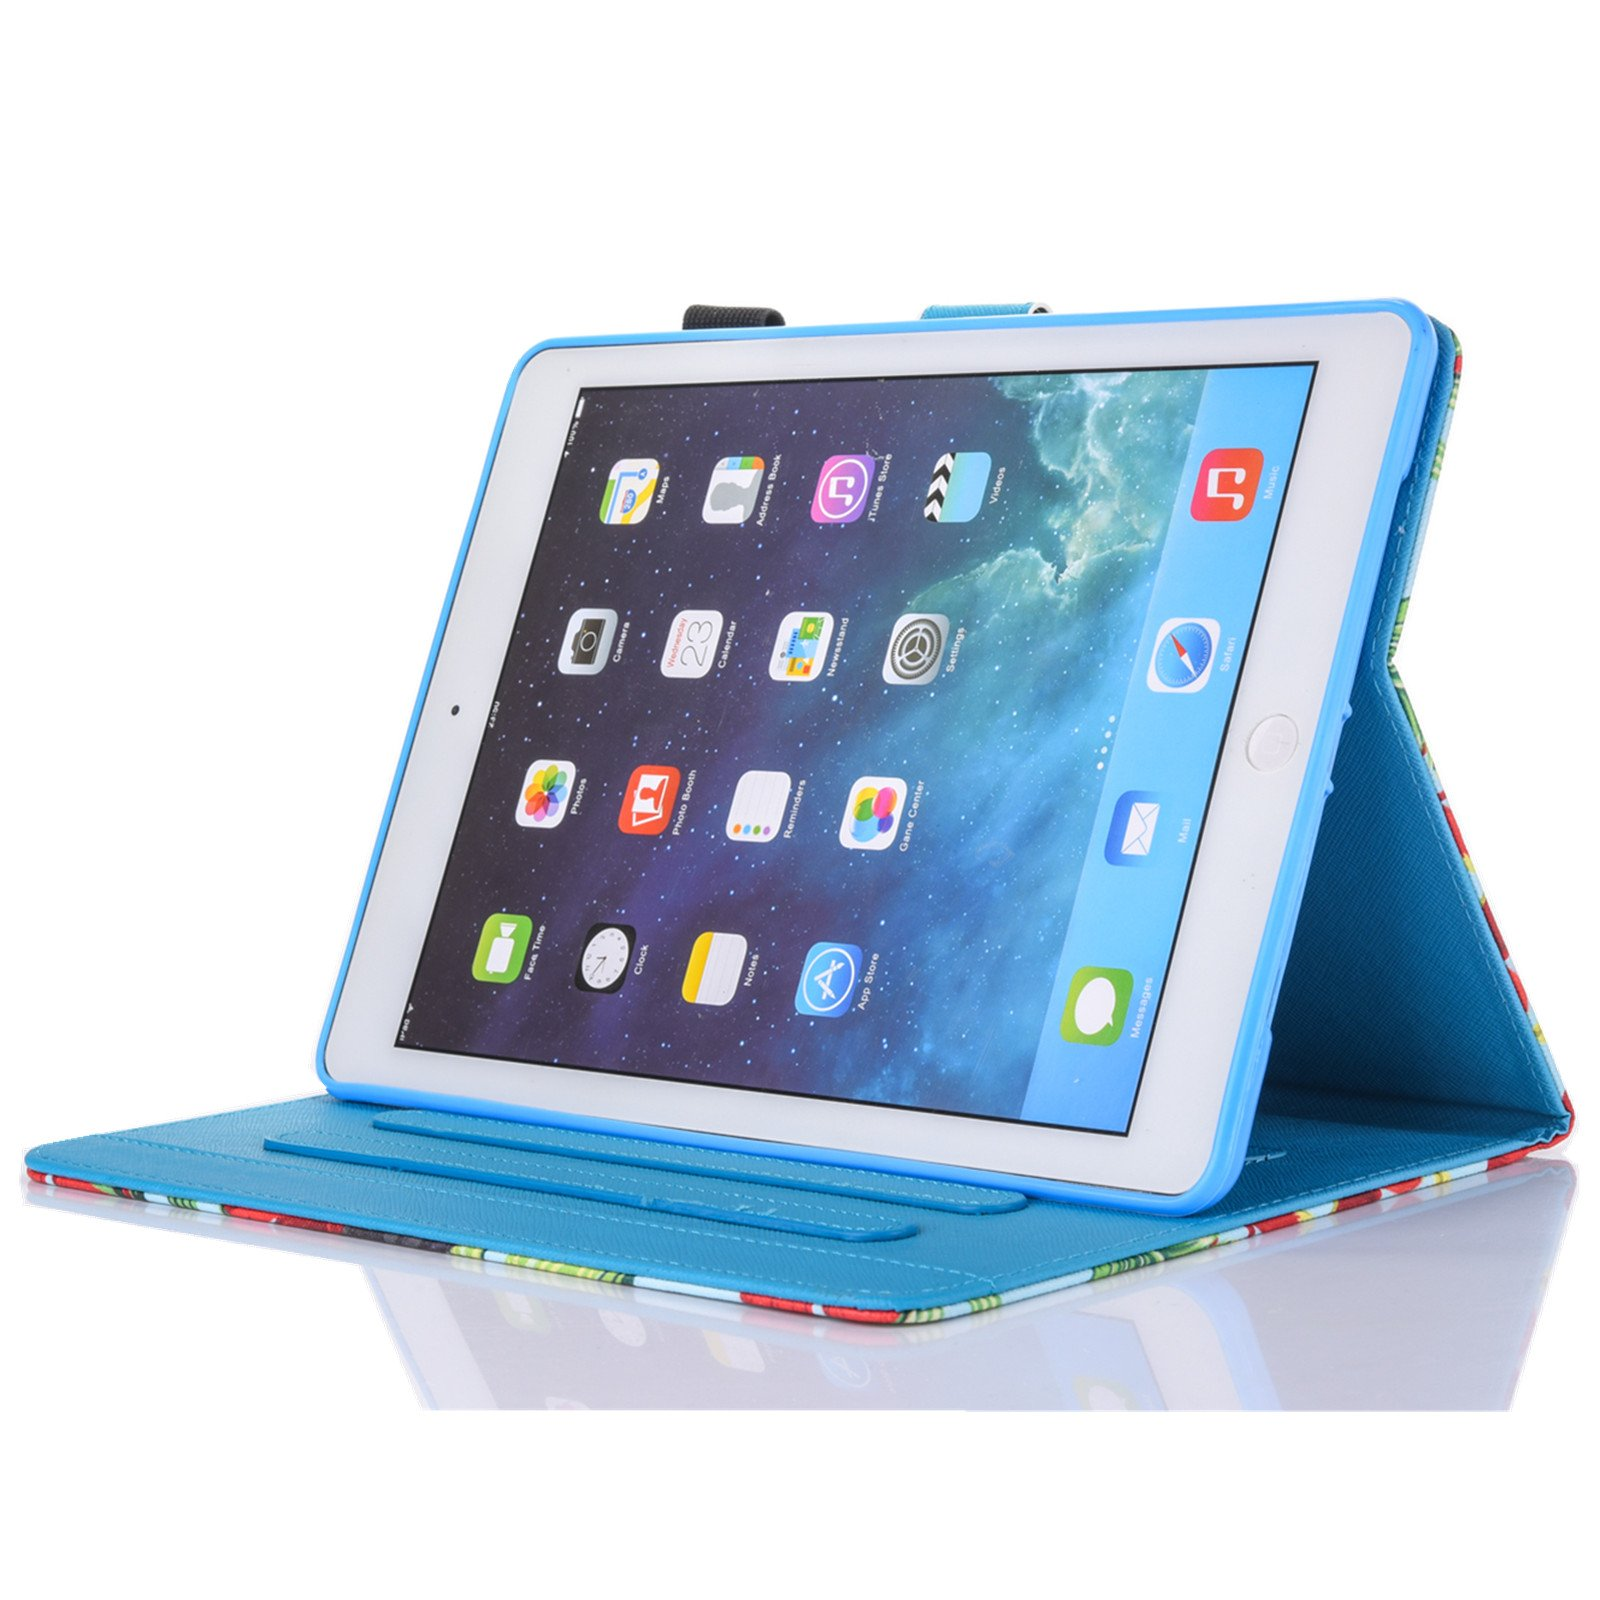 New iPad Case Smart Leather Case - UNOTECH Card Slot Protective Case with Pen Holder Wake/Sleep Function for New iPad 9.7 Inch 2017,iPad Air 1 2, Leopard Cat by UNOTECH (Image #6)